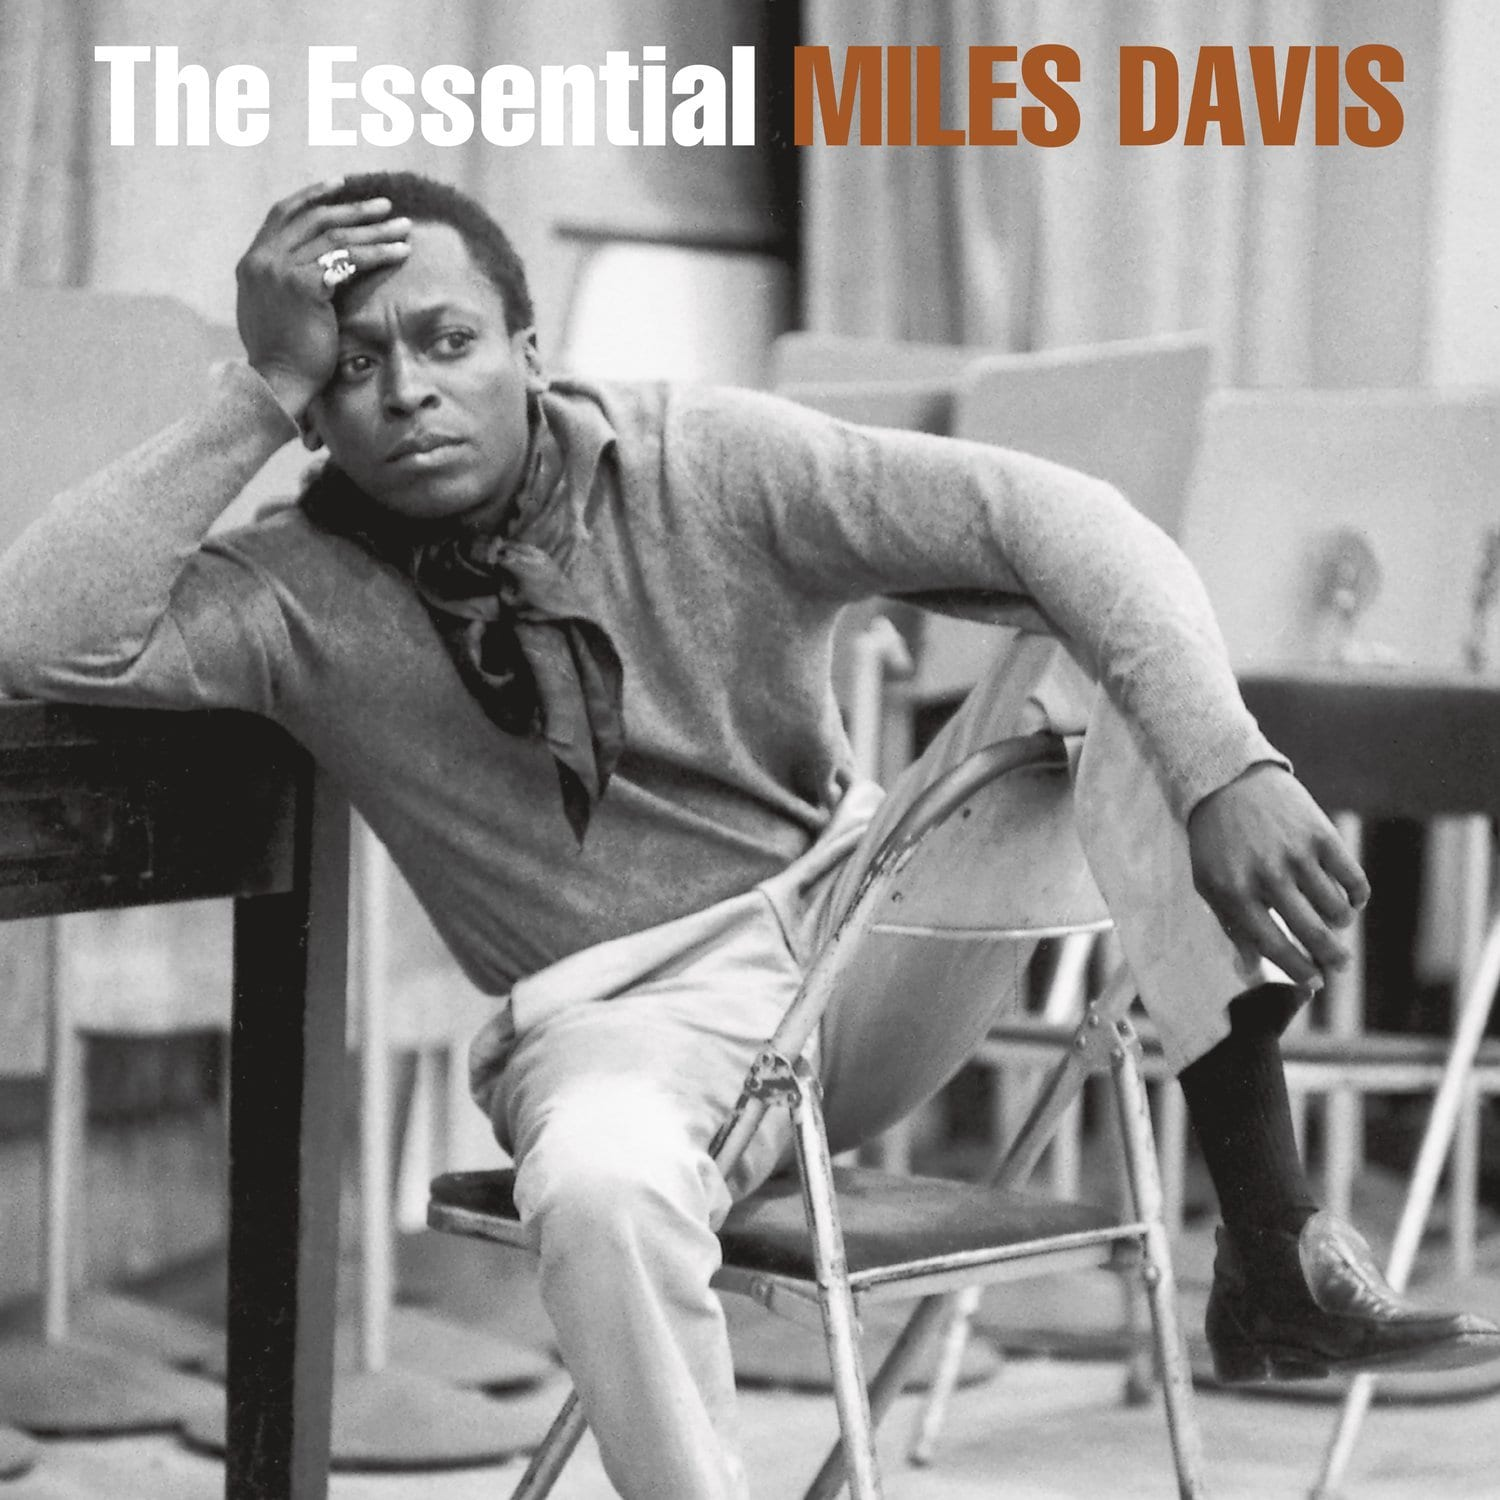 Miles Davis - The Essential Miles Davis [2LP] - Urban Vinyl | Records, Headphones, and more.